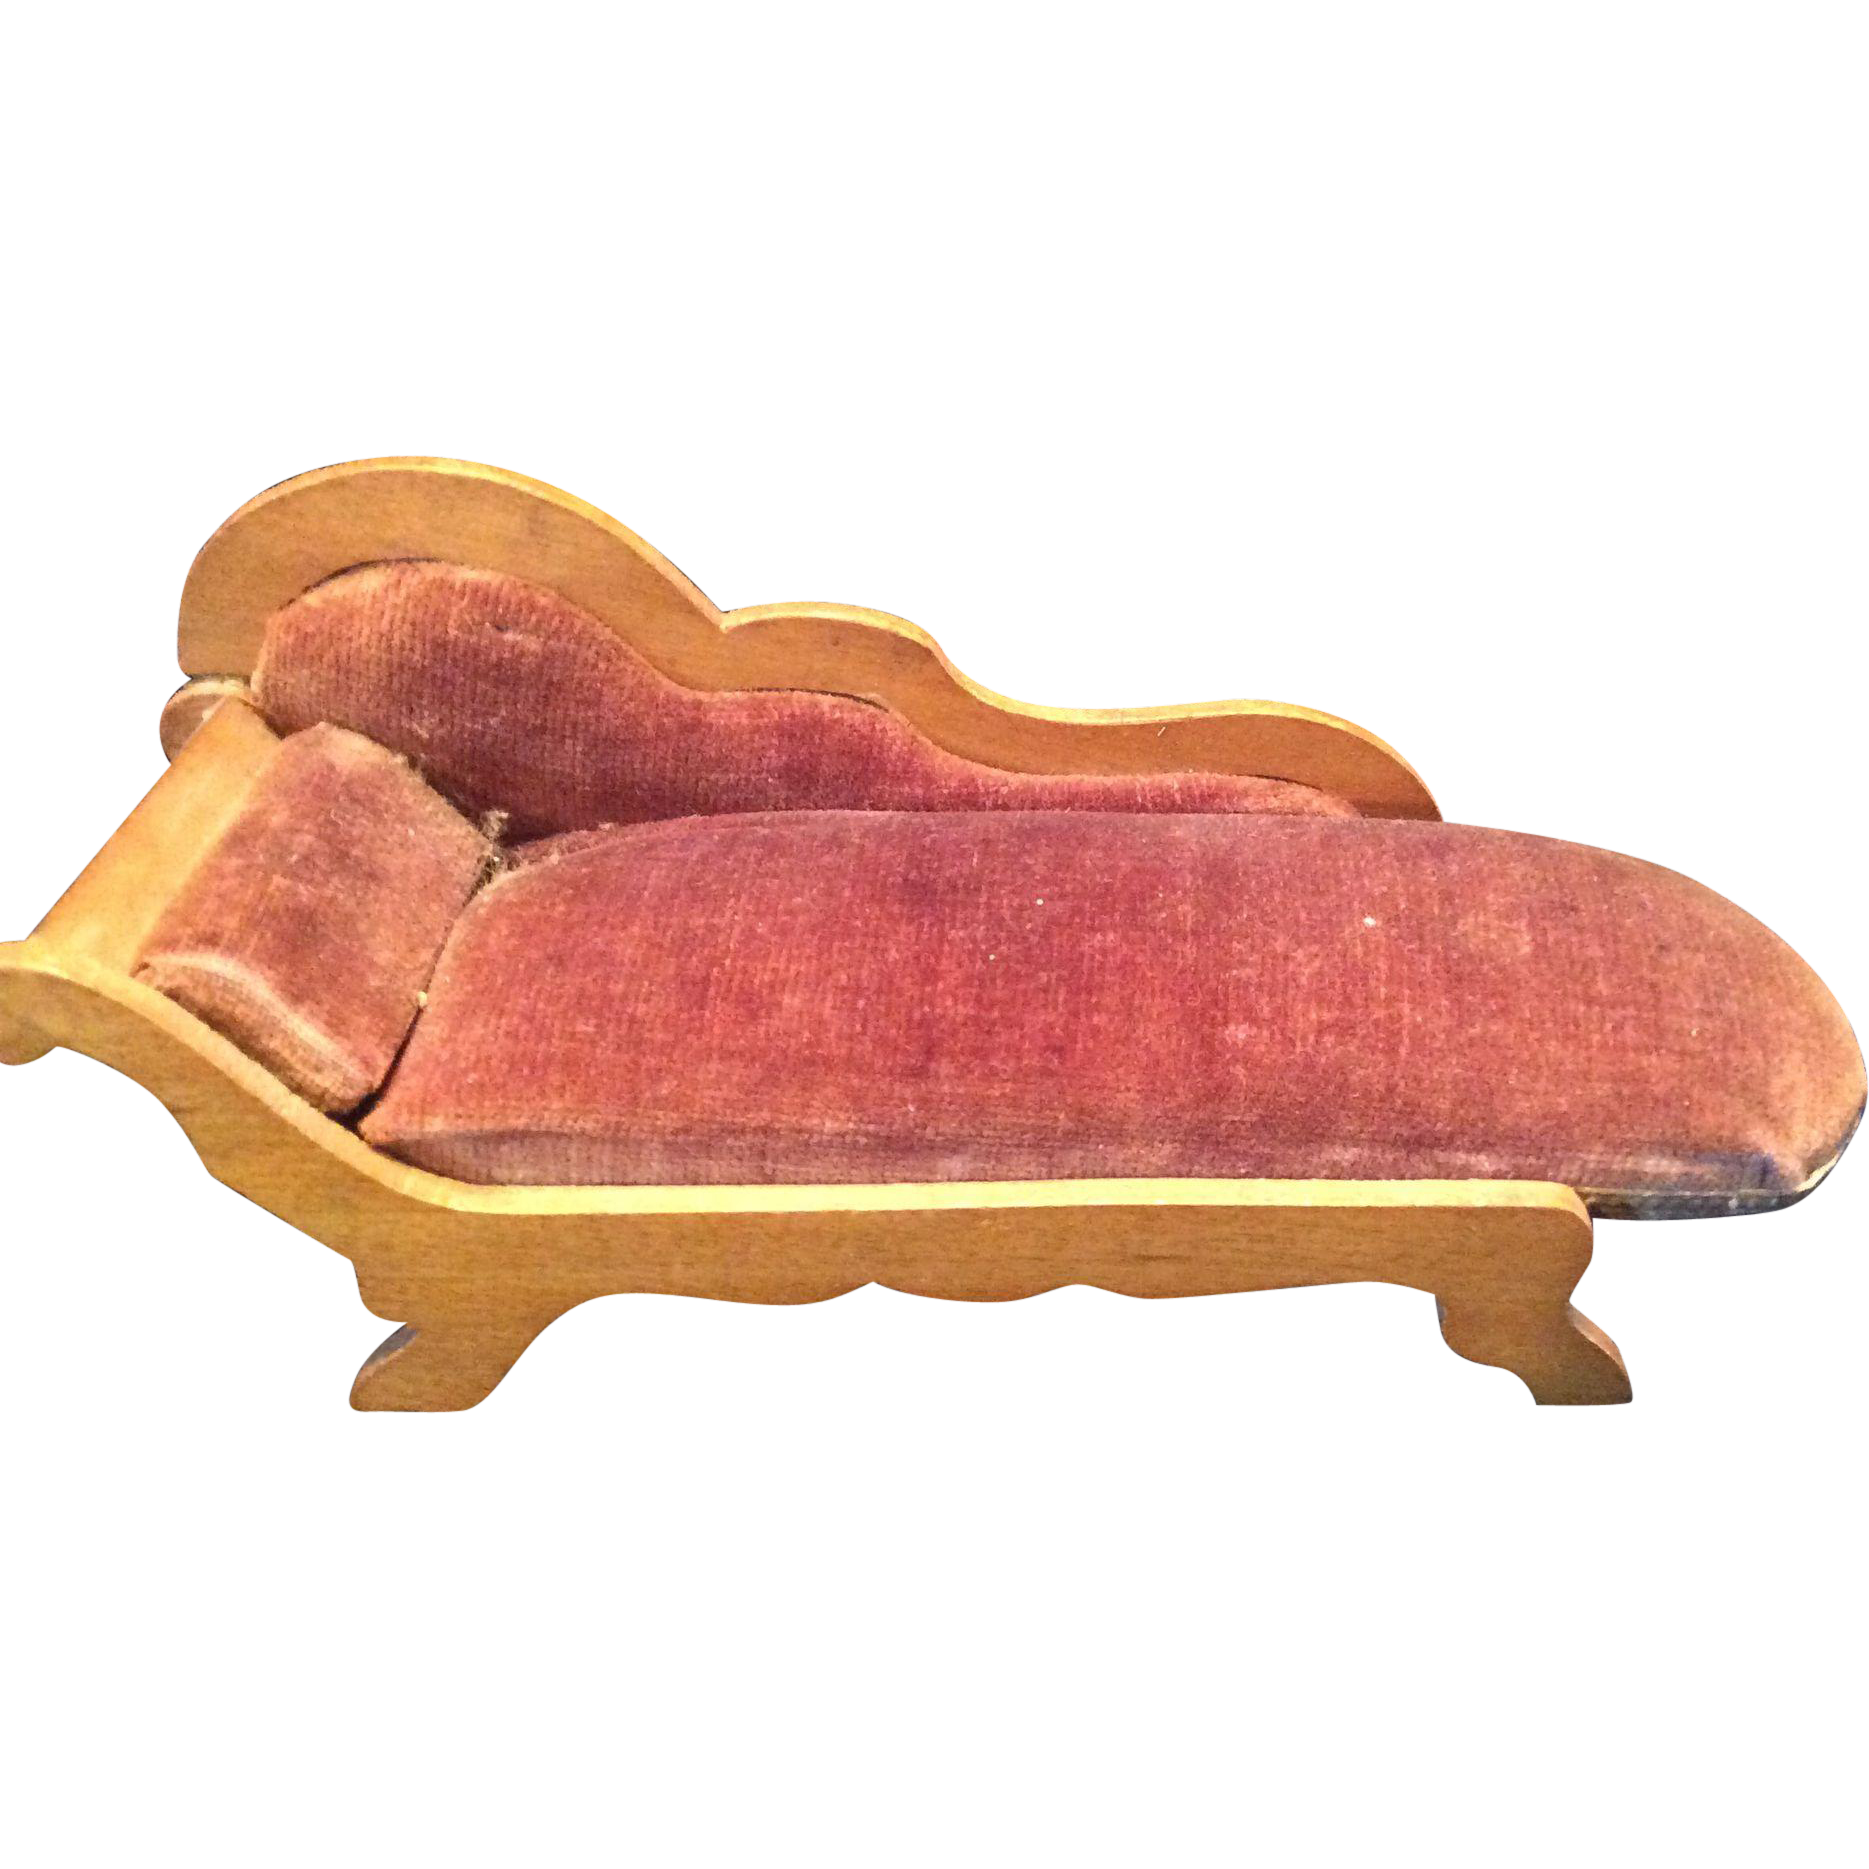 Schnegast Fainting Couch From Frizellburgantiques On Ruby Lane